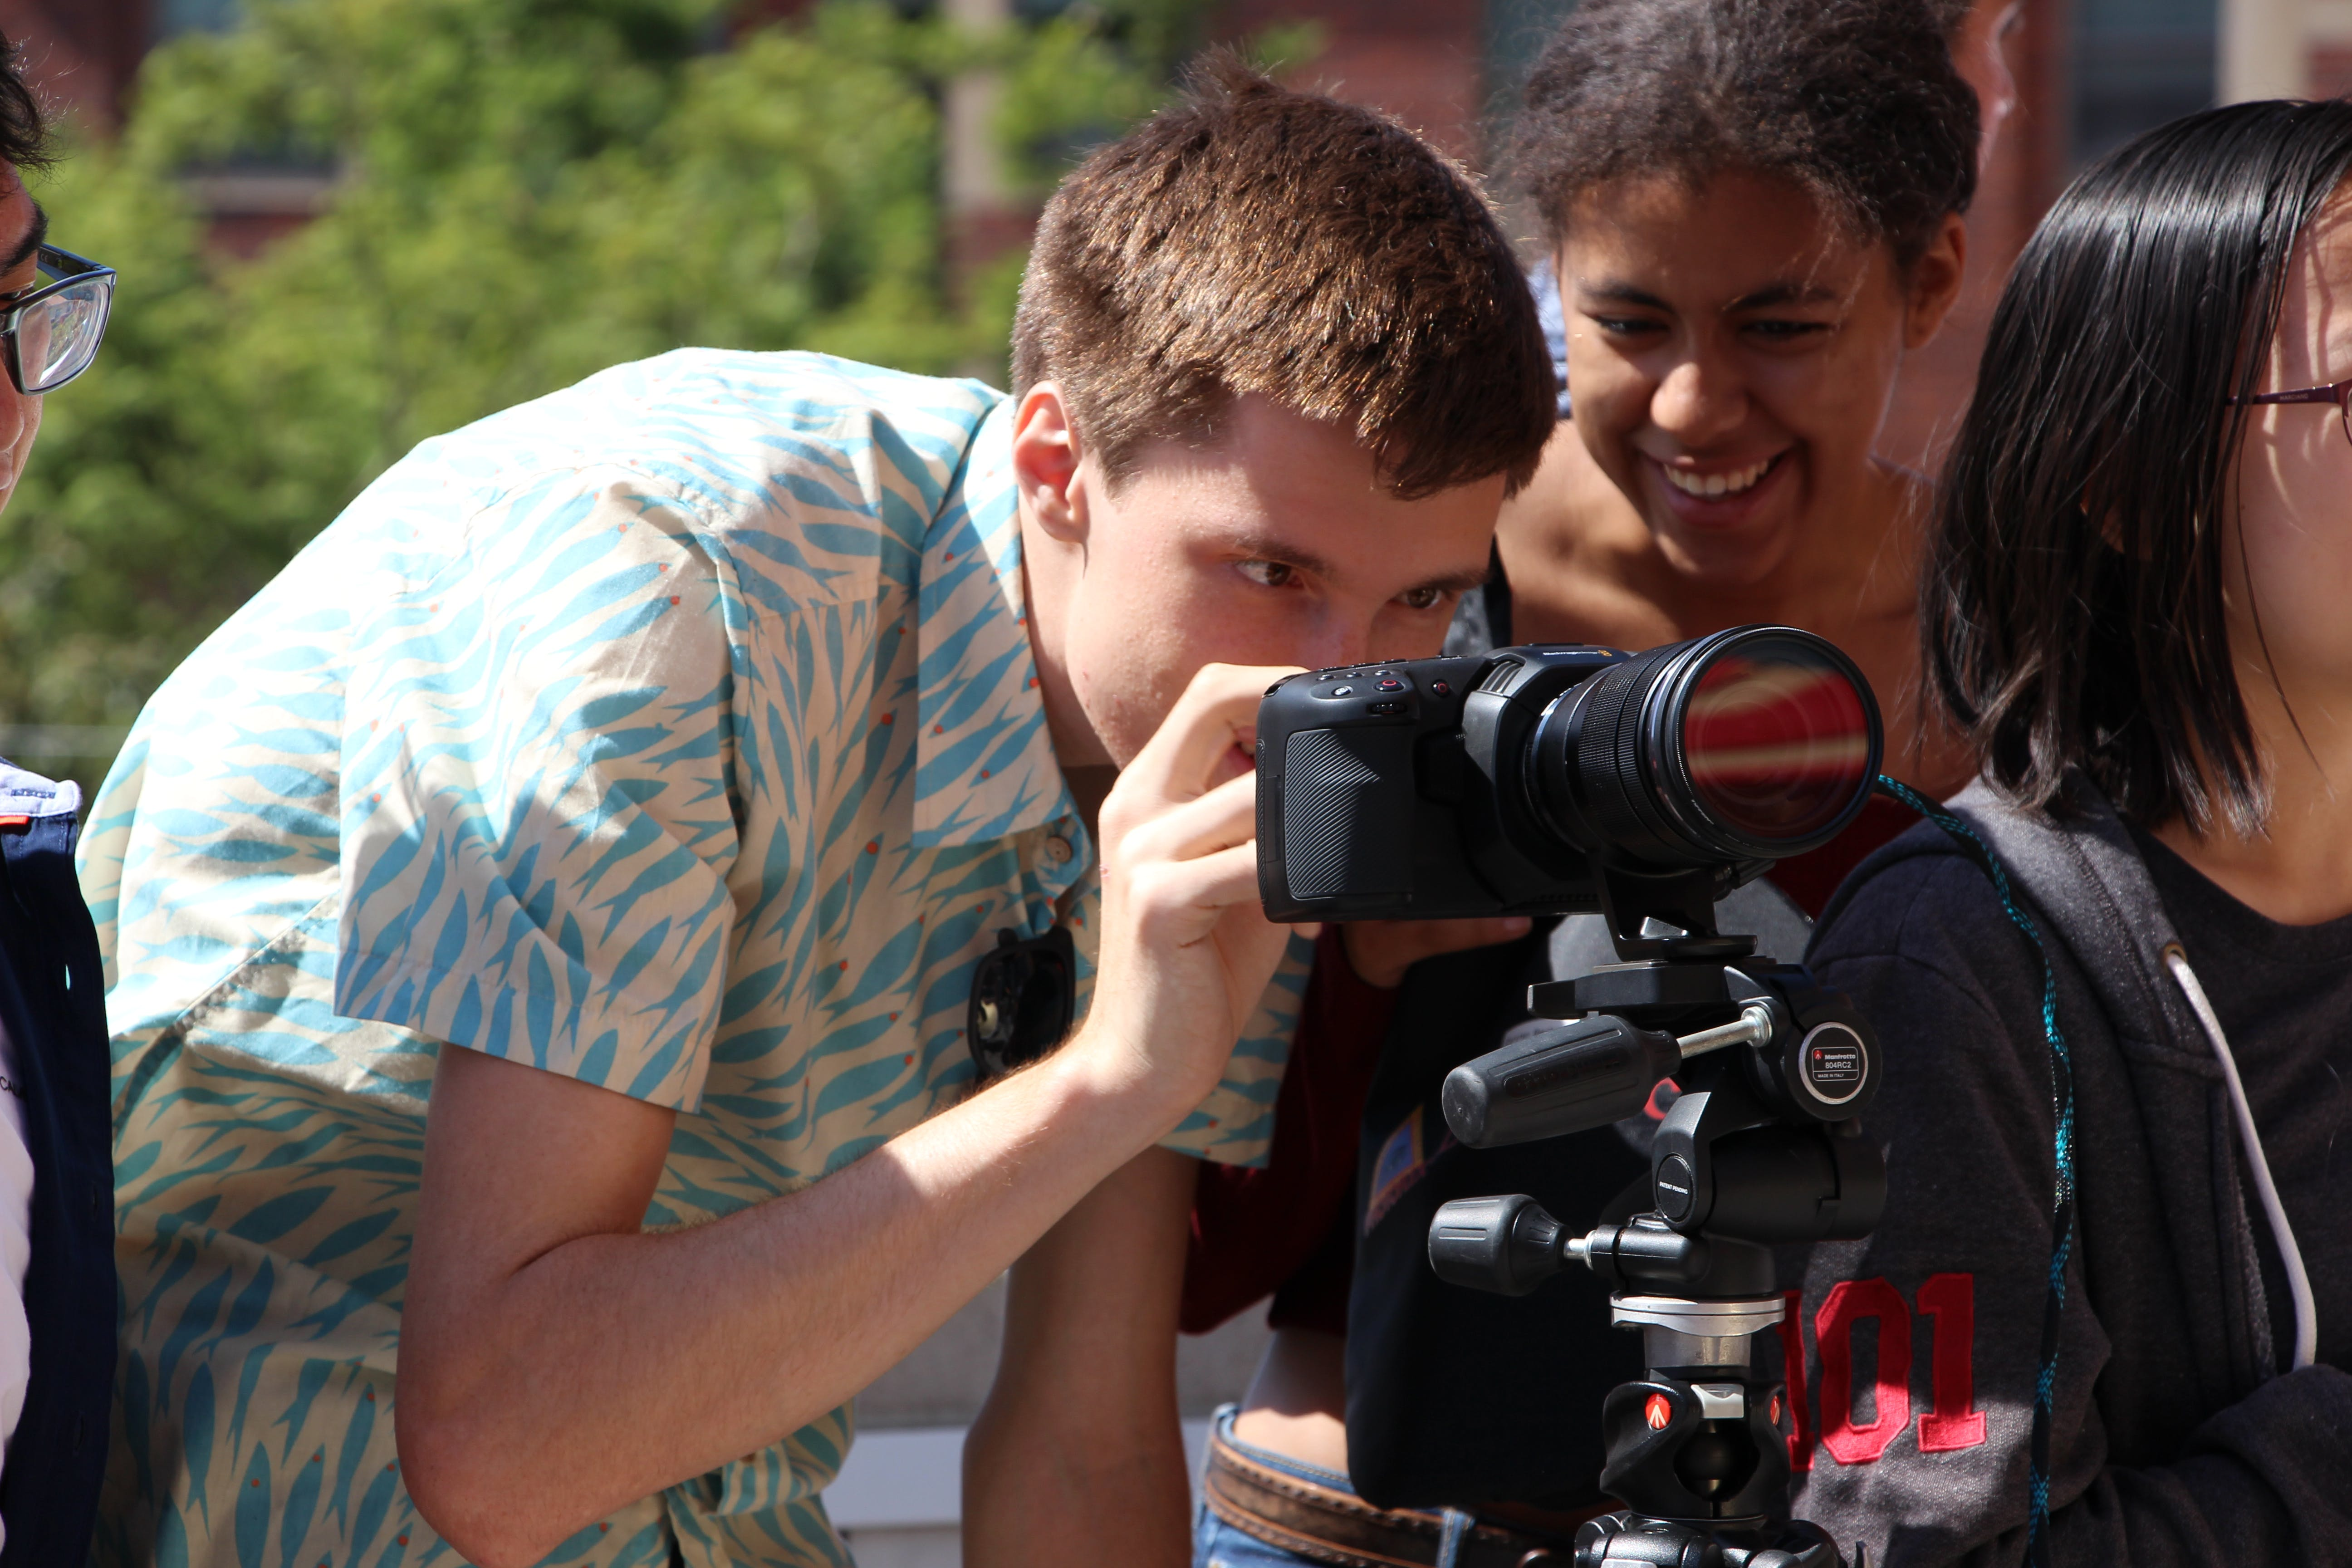 Students looking into a camera